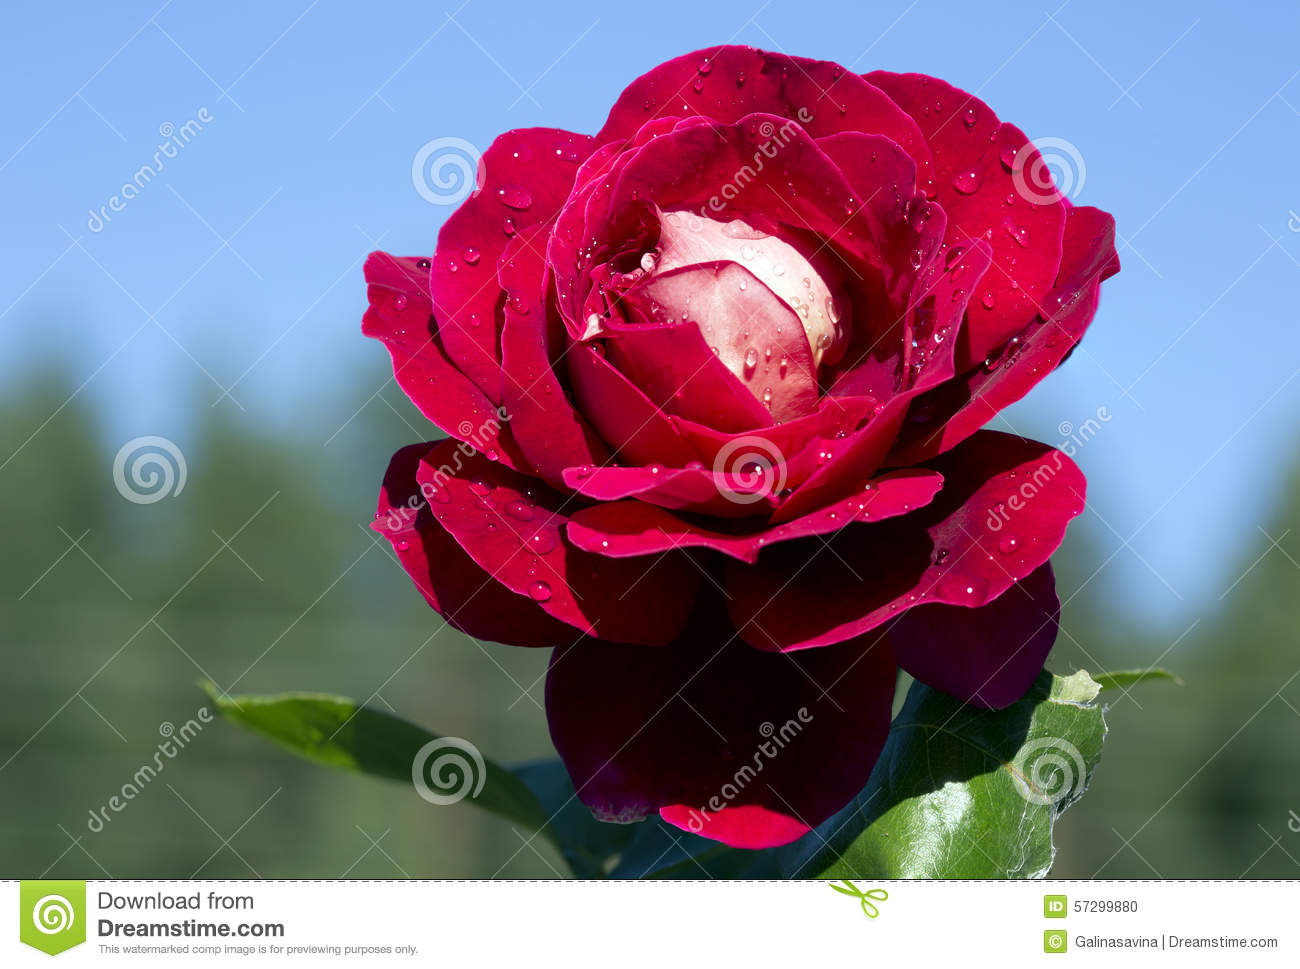 Red rose queen of flowers stock photo image of gardening 57299880 red rose queen of flowers izmirmasajfo